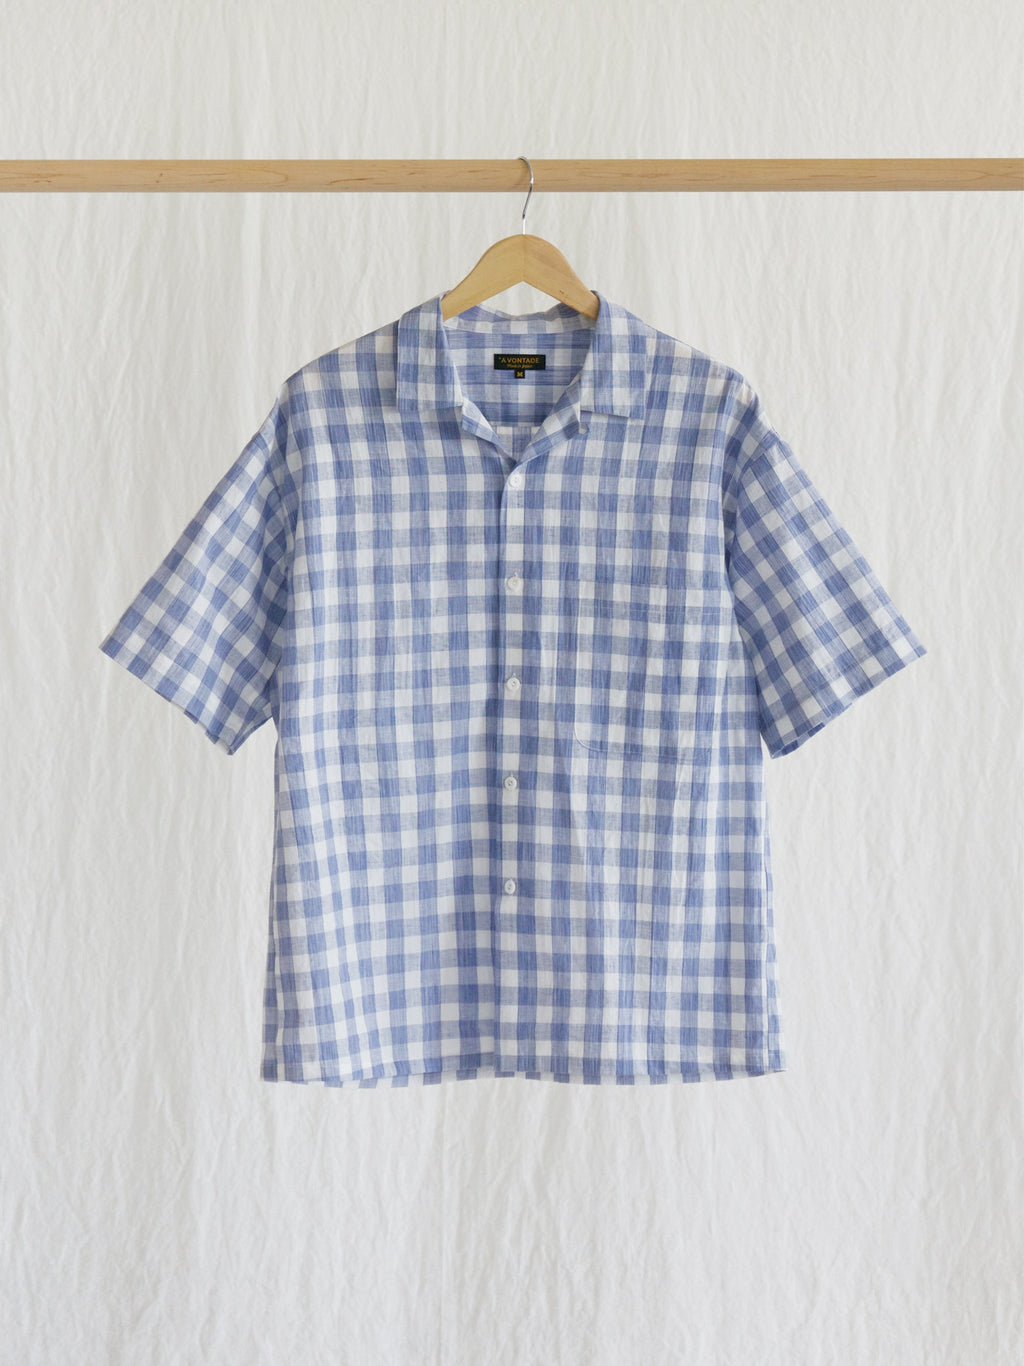 Namu Shop - A Vontade Lax Open S/S Shirt